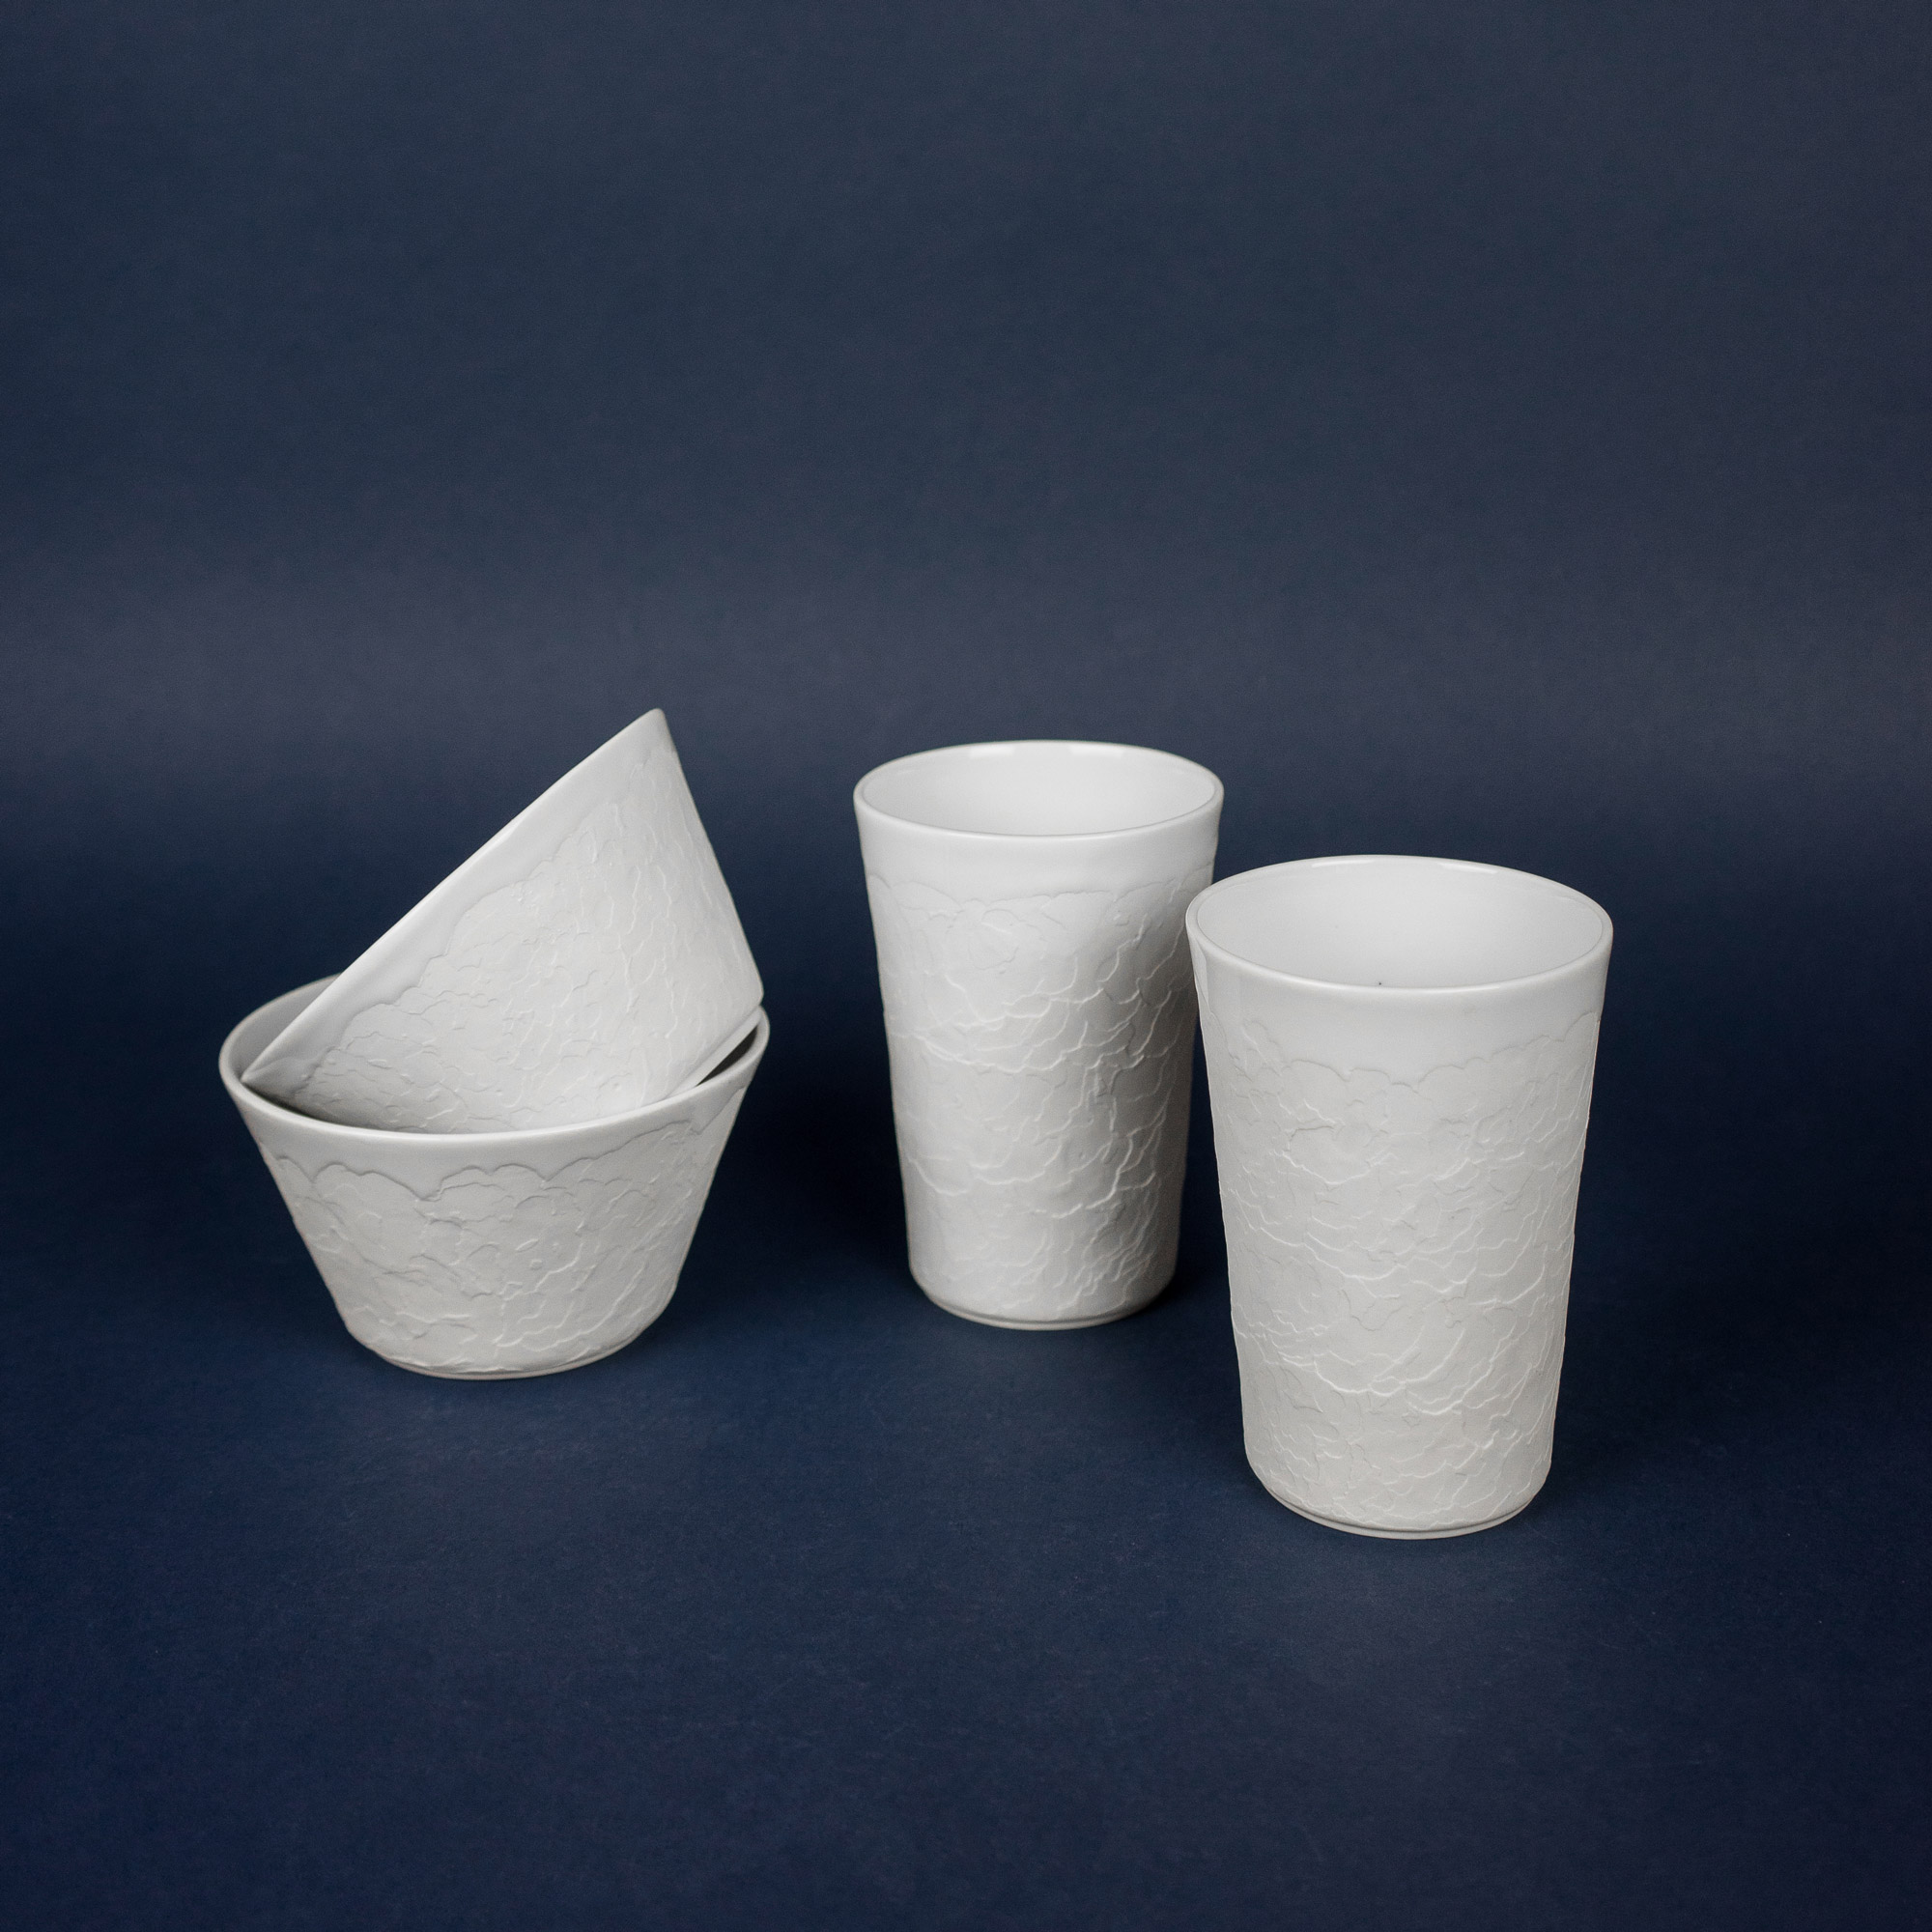 Two white ceramic structure cups and bowls by Czech design studio Nalejto